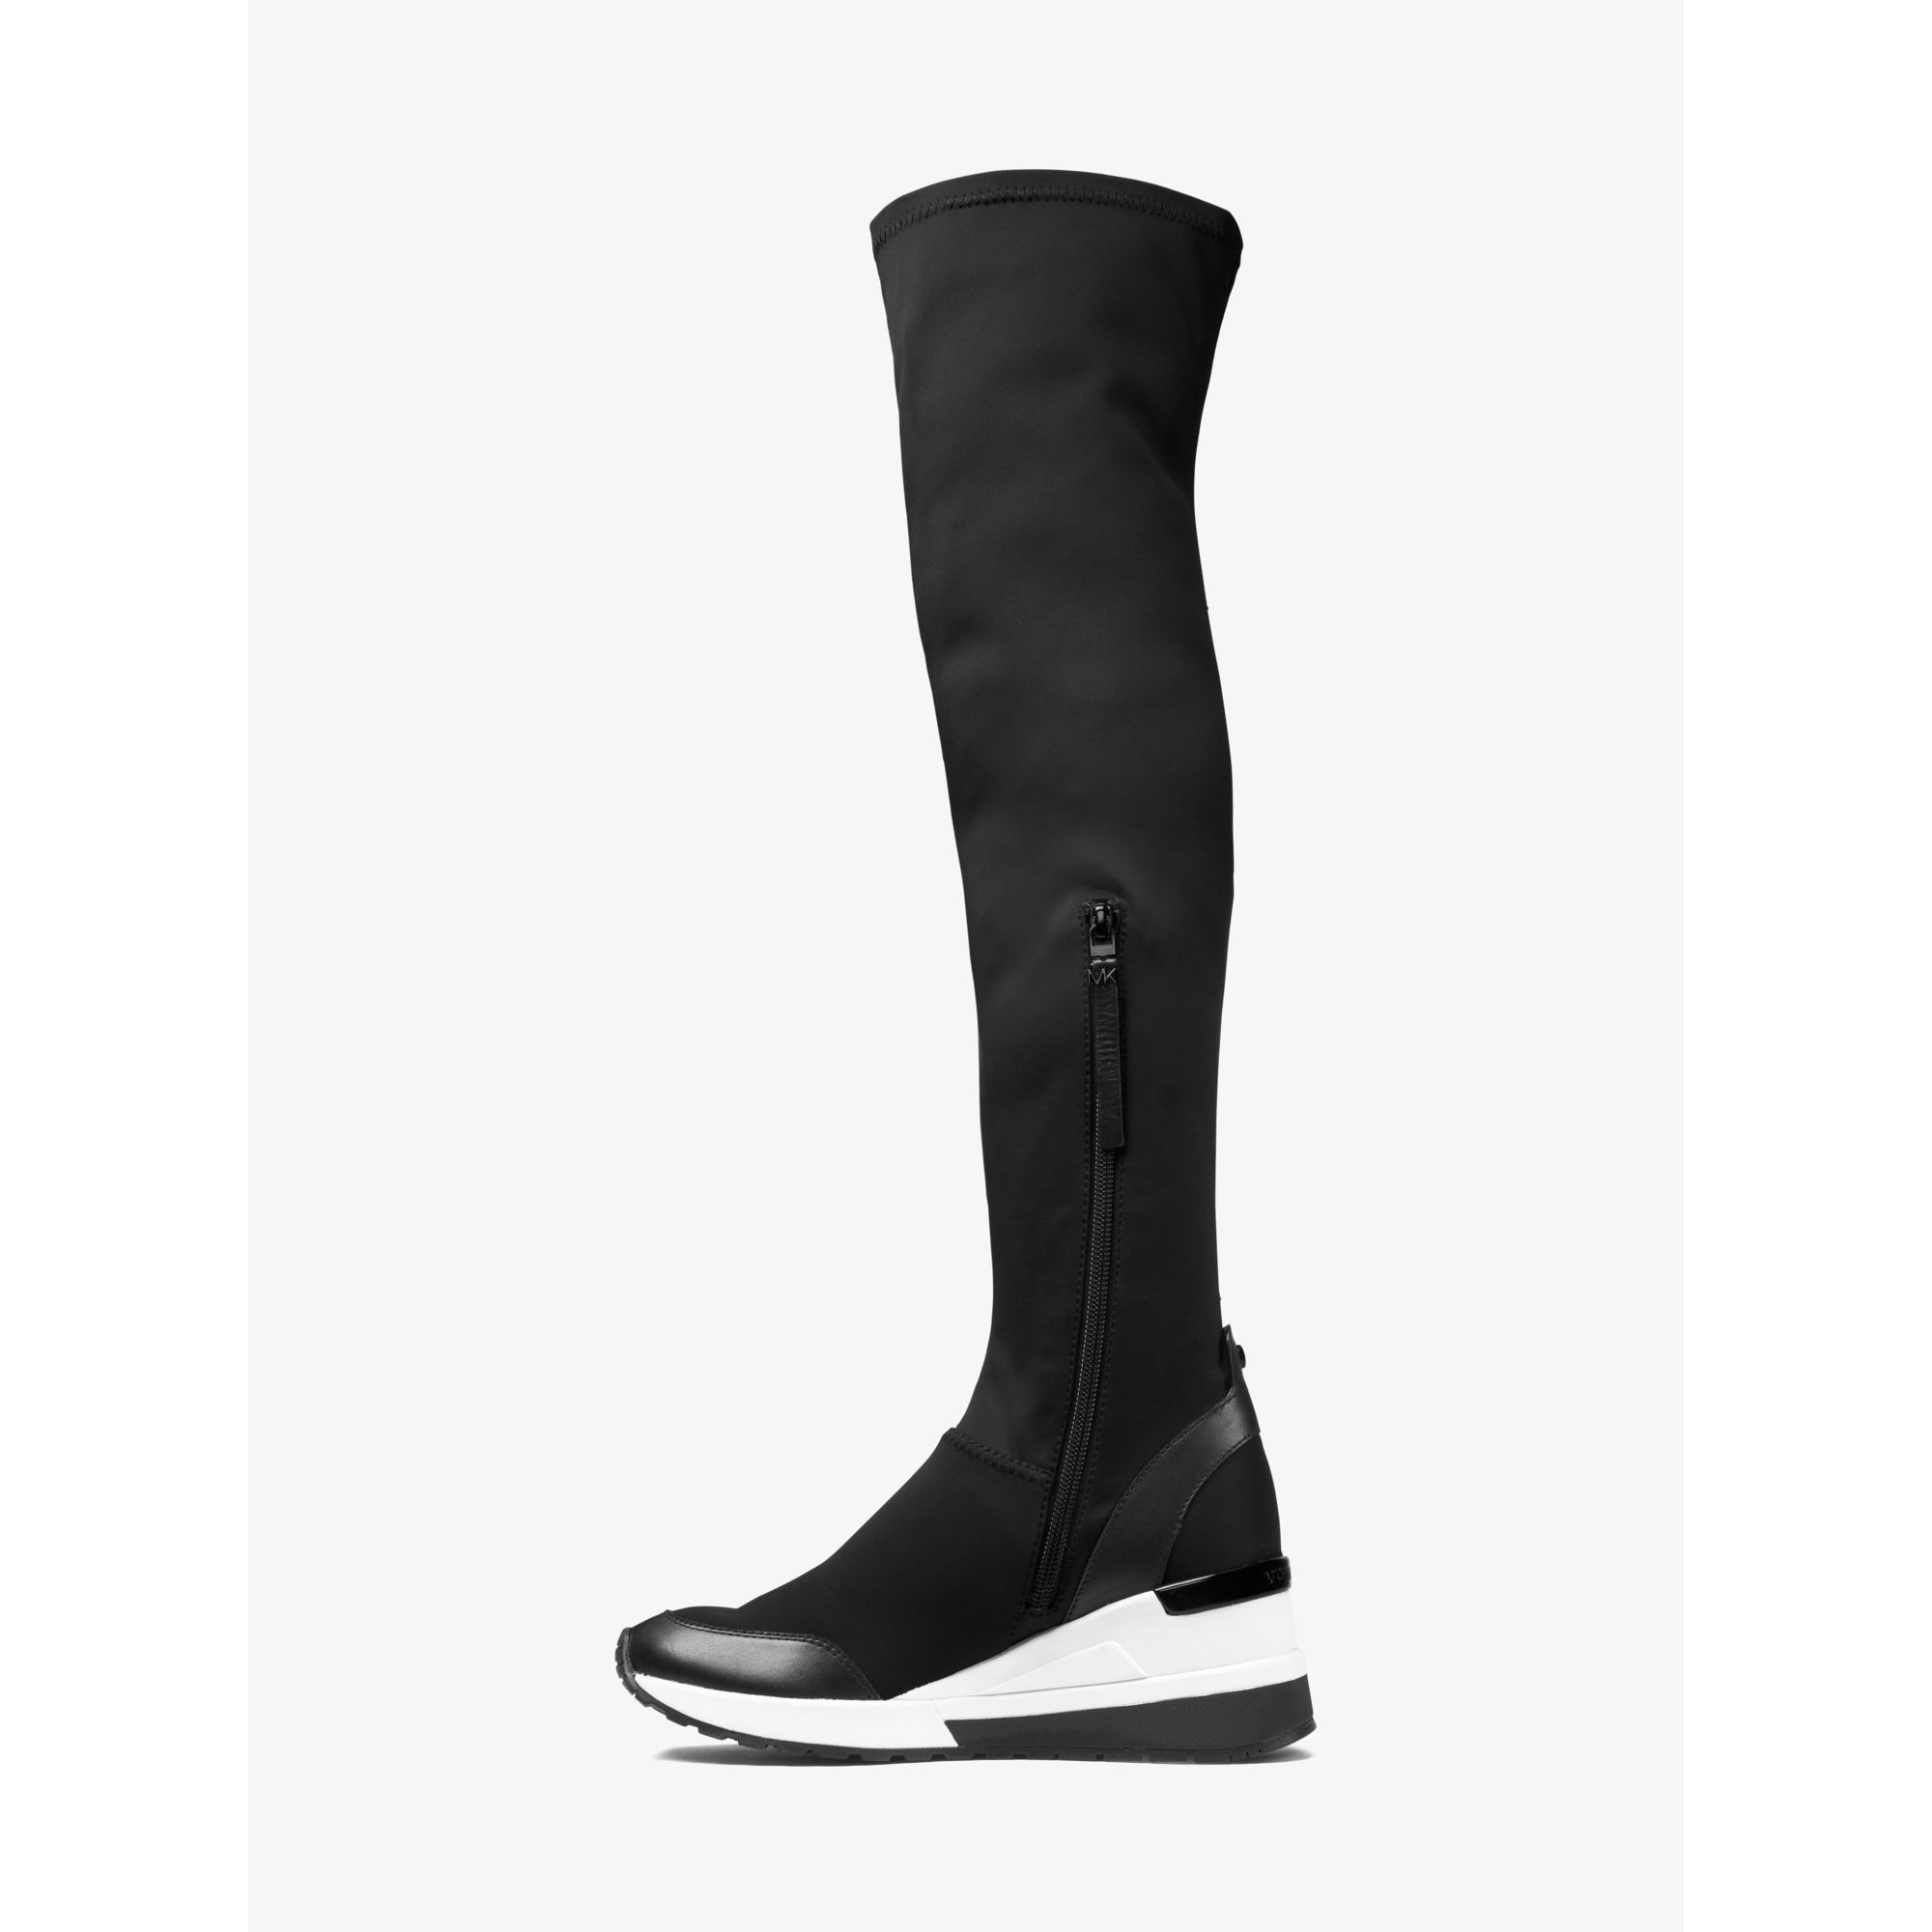 33cbc65bd09a Michael Kors Ace Over-the-knee Scuba Boot in Black - Lyst